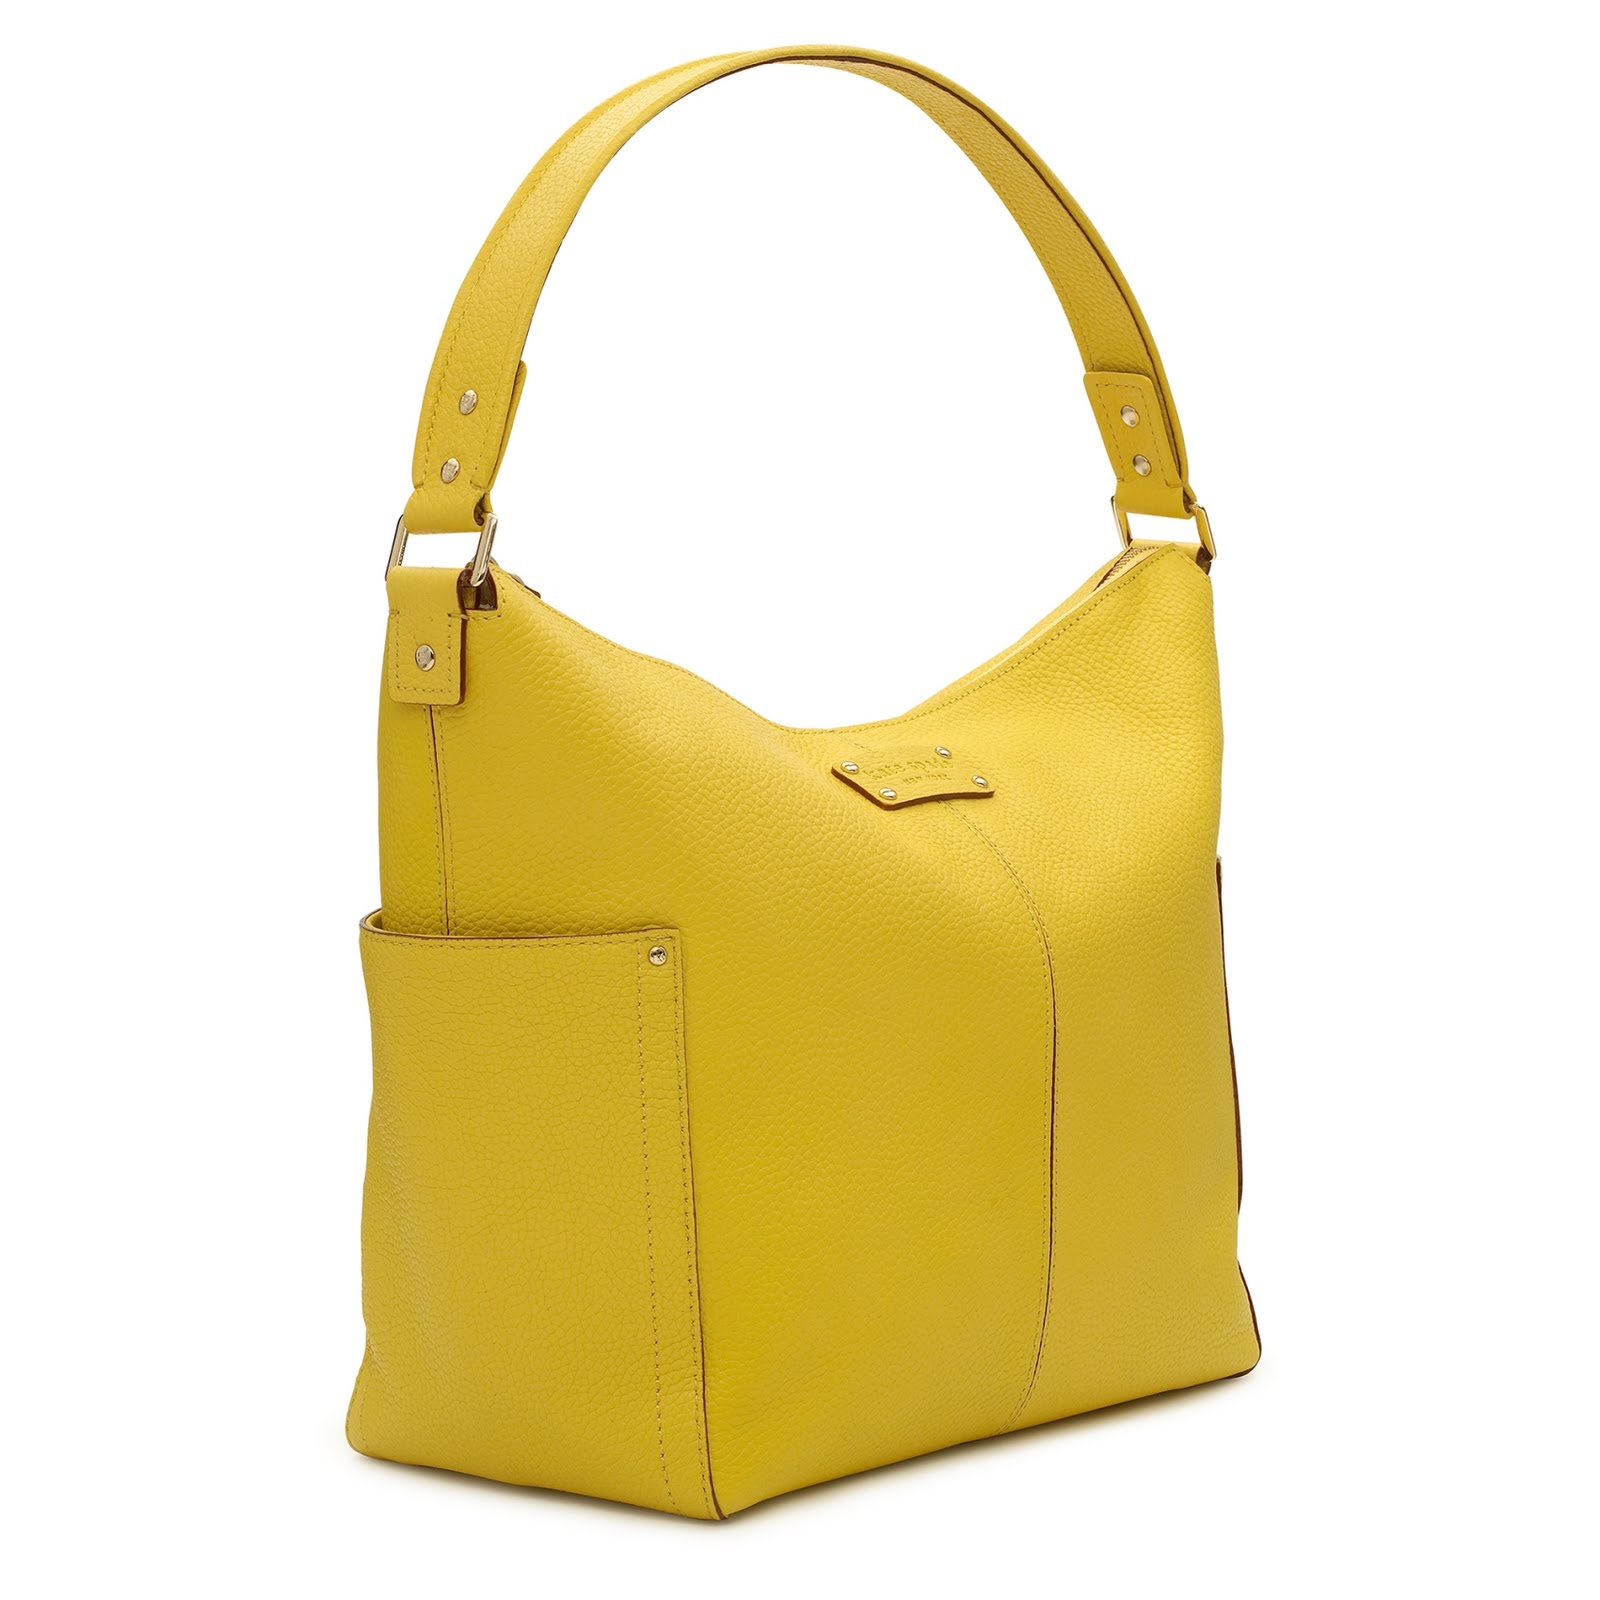 projectcuttlefish: New Kate Spade HandBags in Stock~